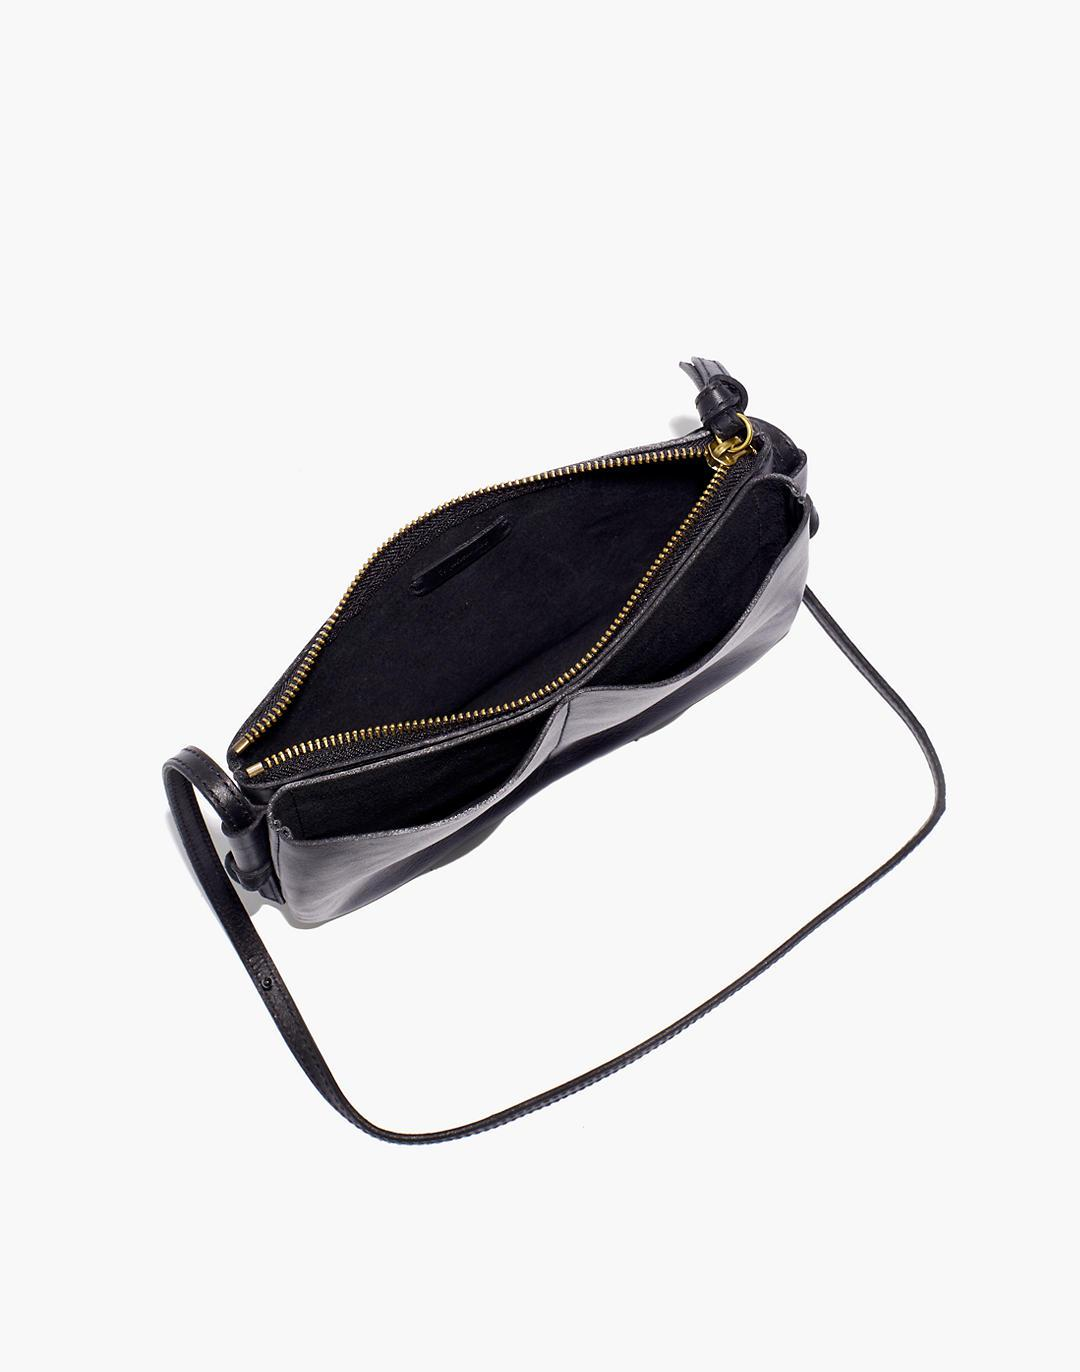 The Knotted Crossbody Bag 1